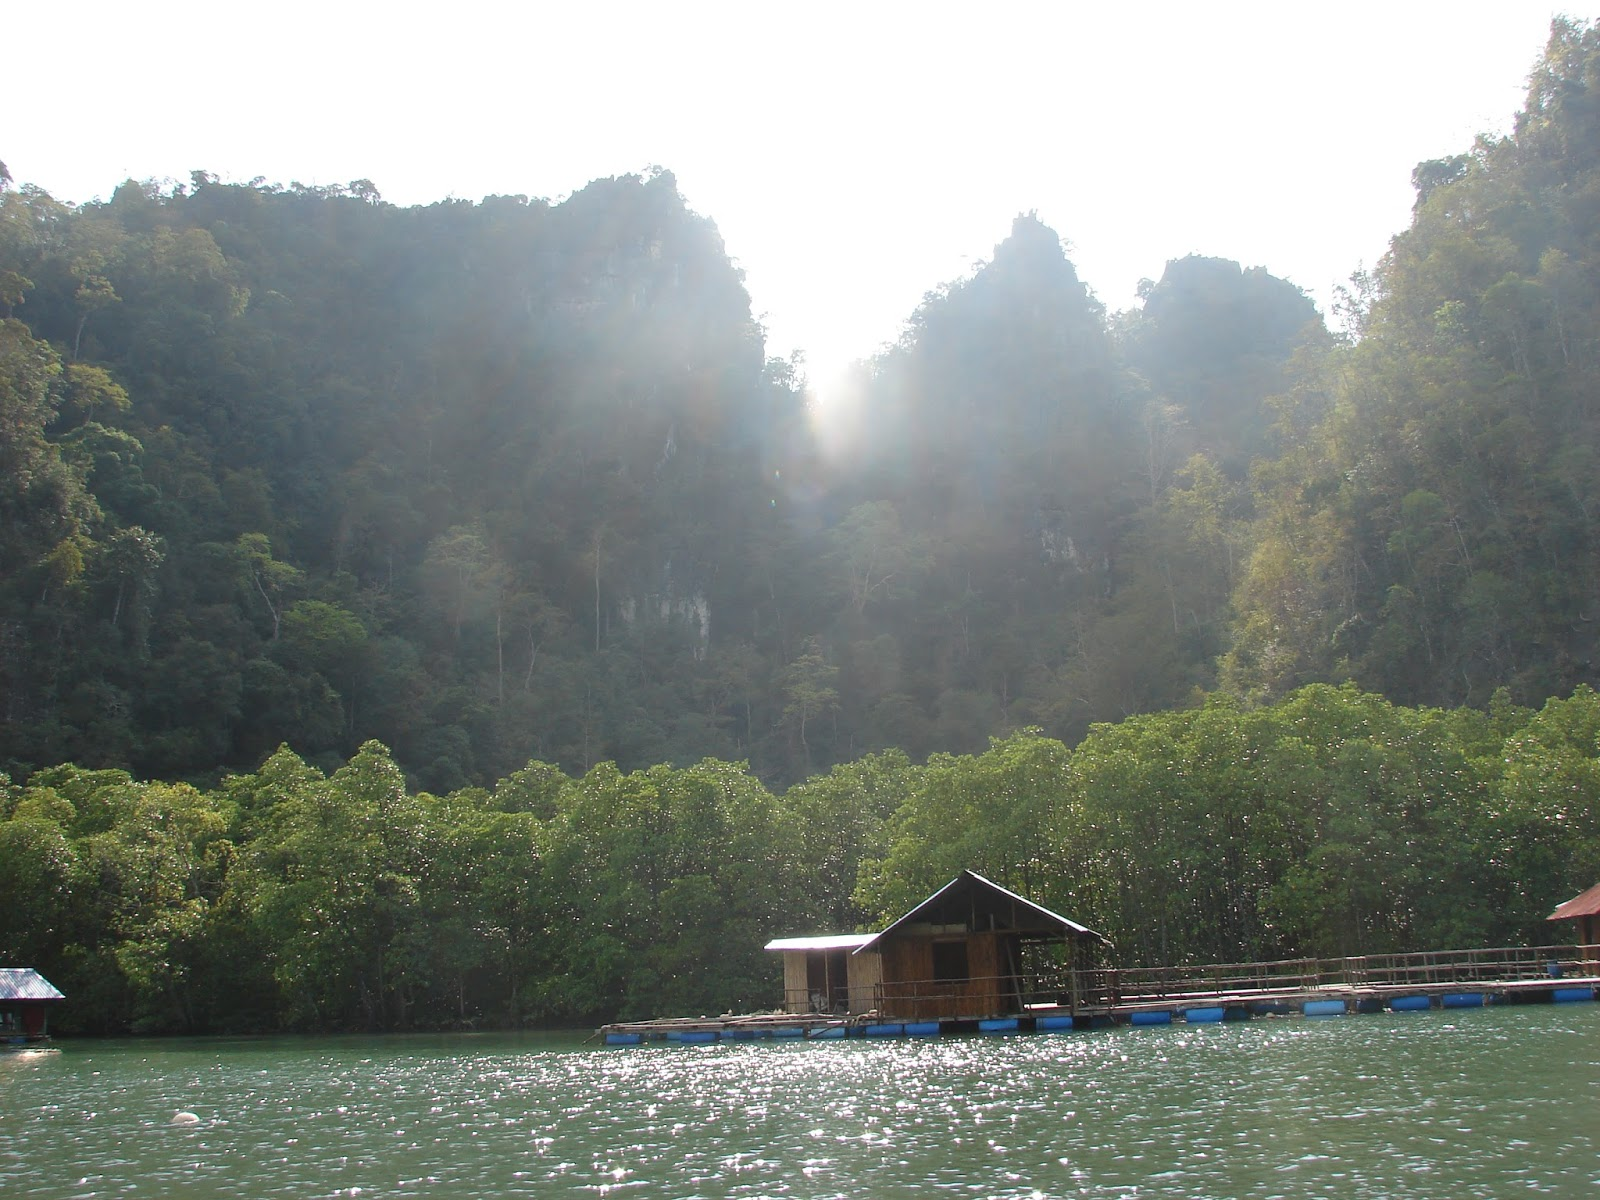 Langkawi truely paradise on earth - part 1